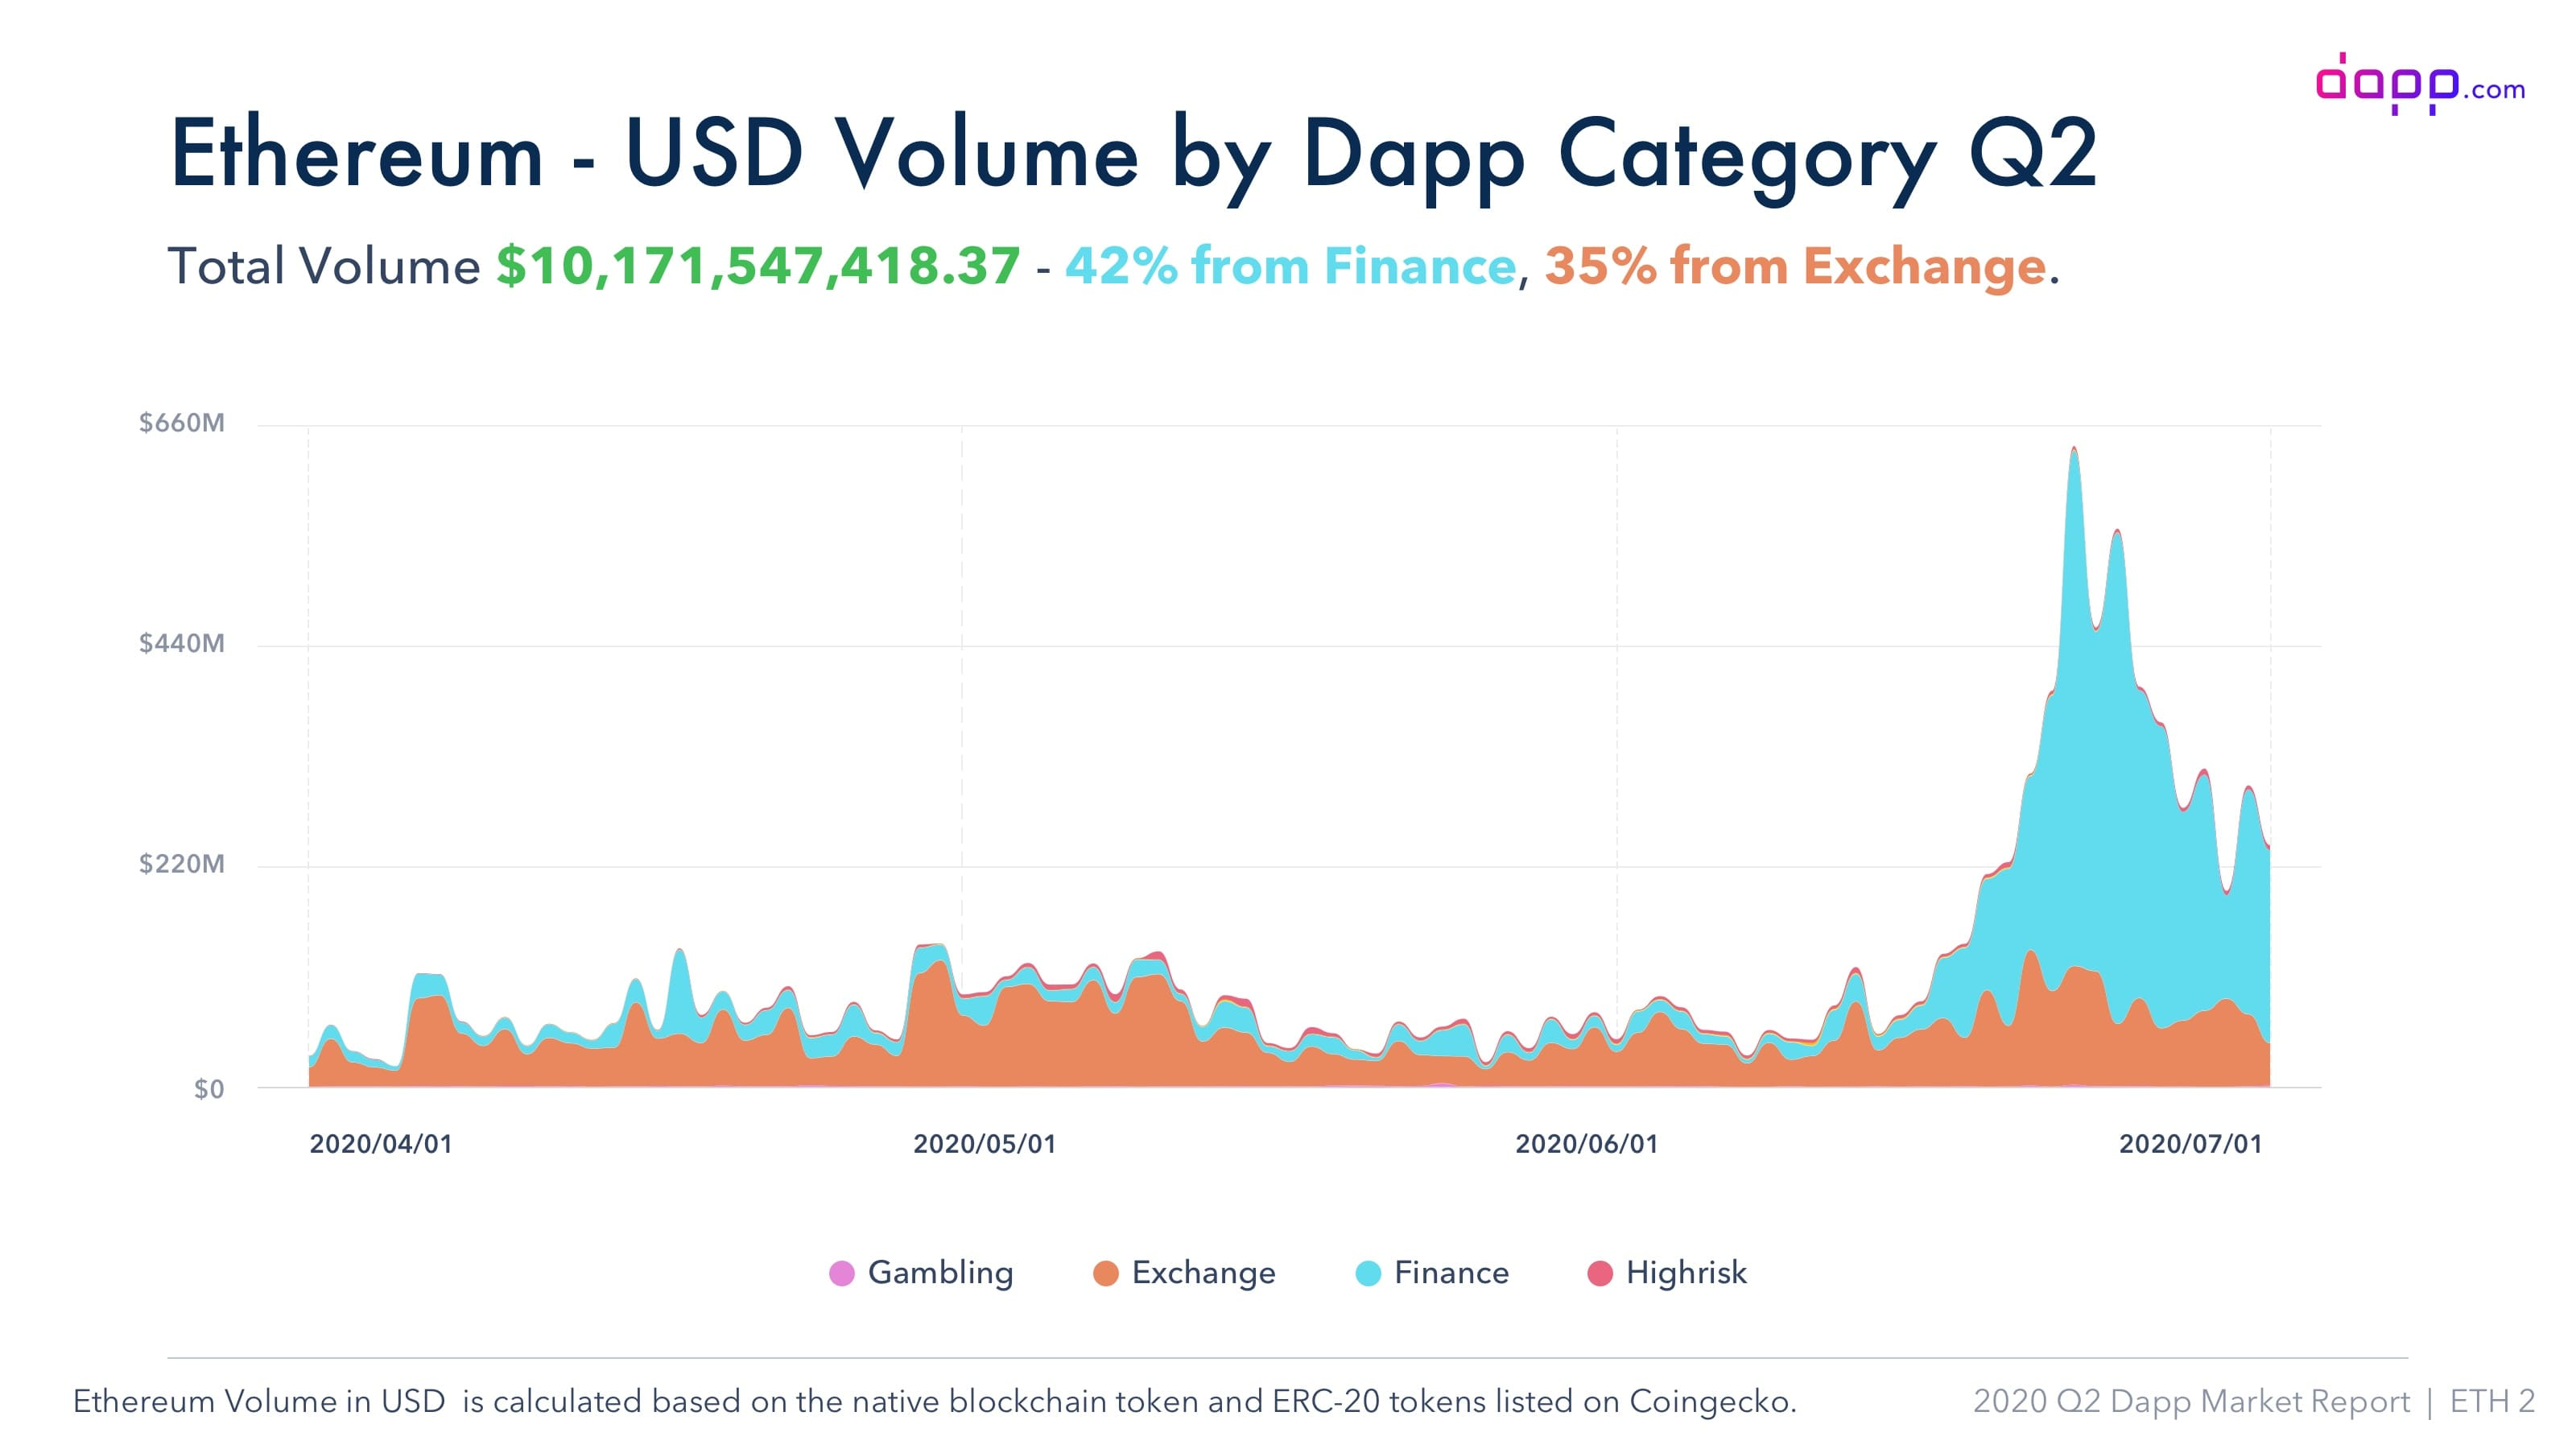 Q2 Dapp USD Vol